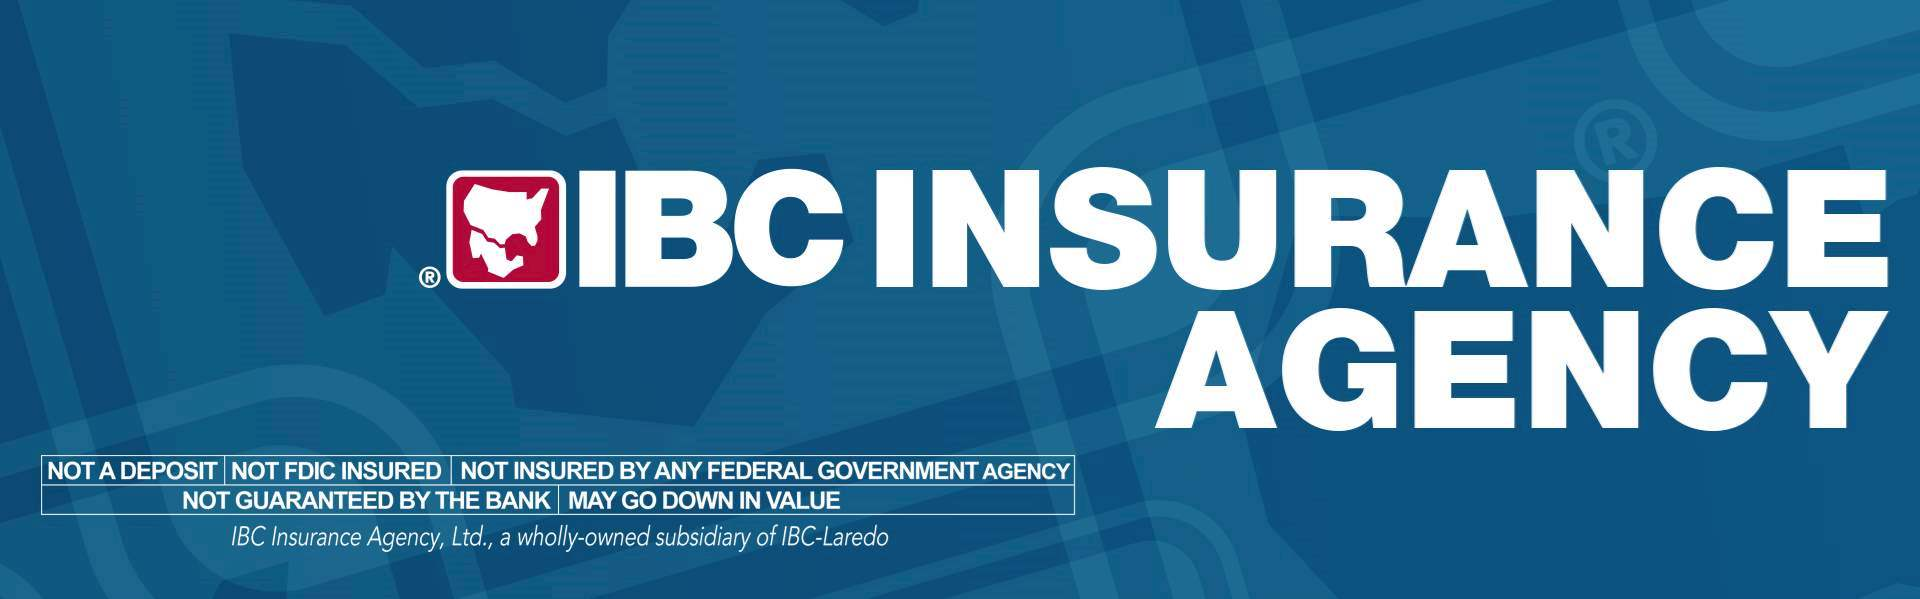 About IBC Insurance Agency, Ltd.